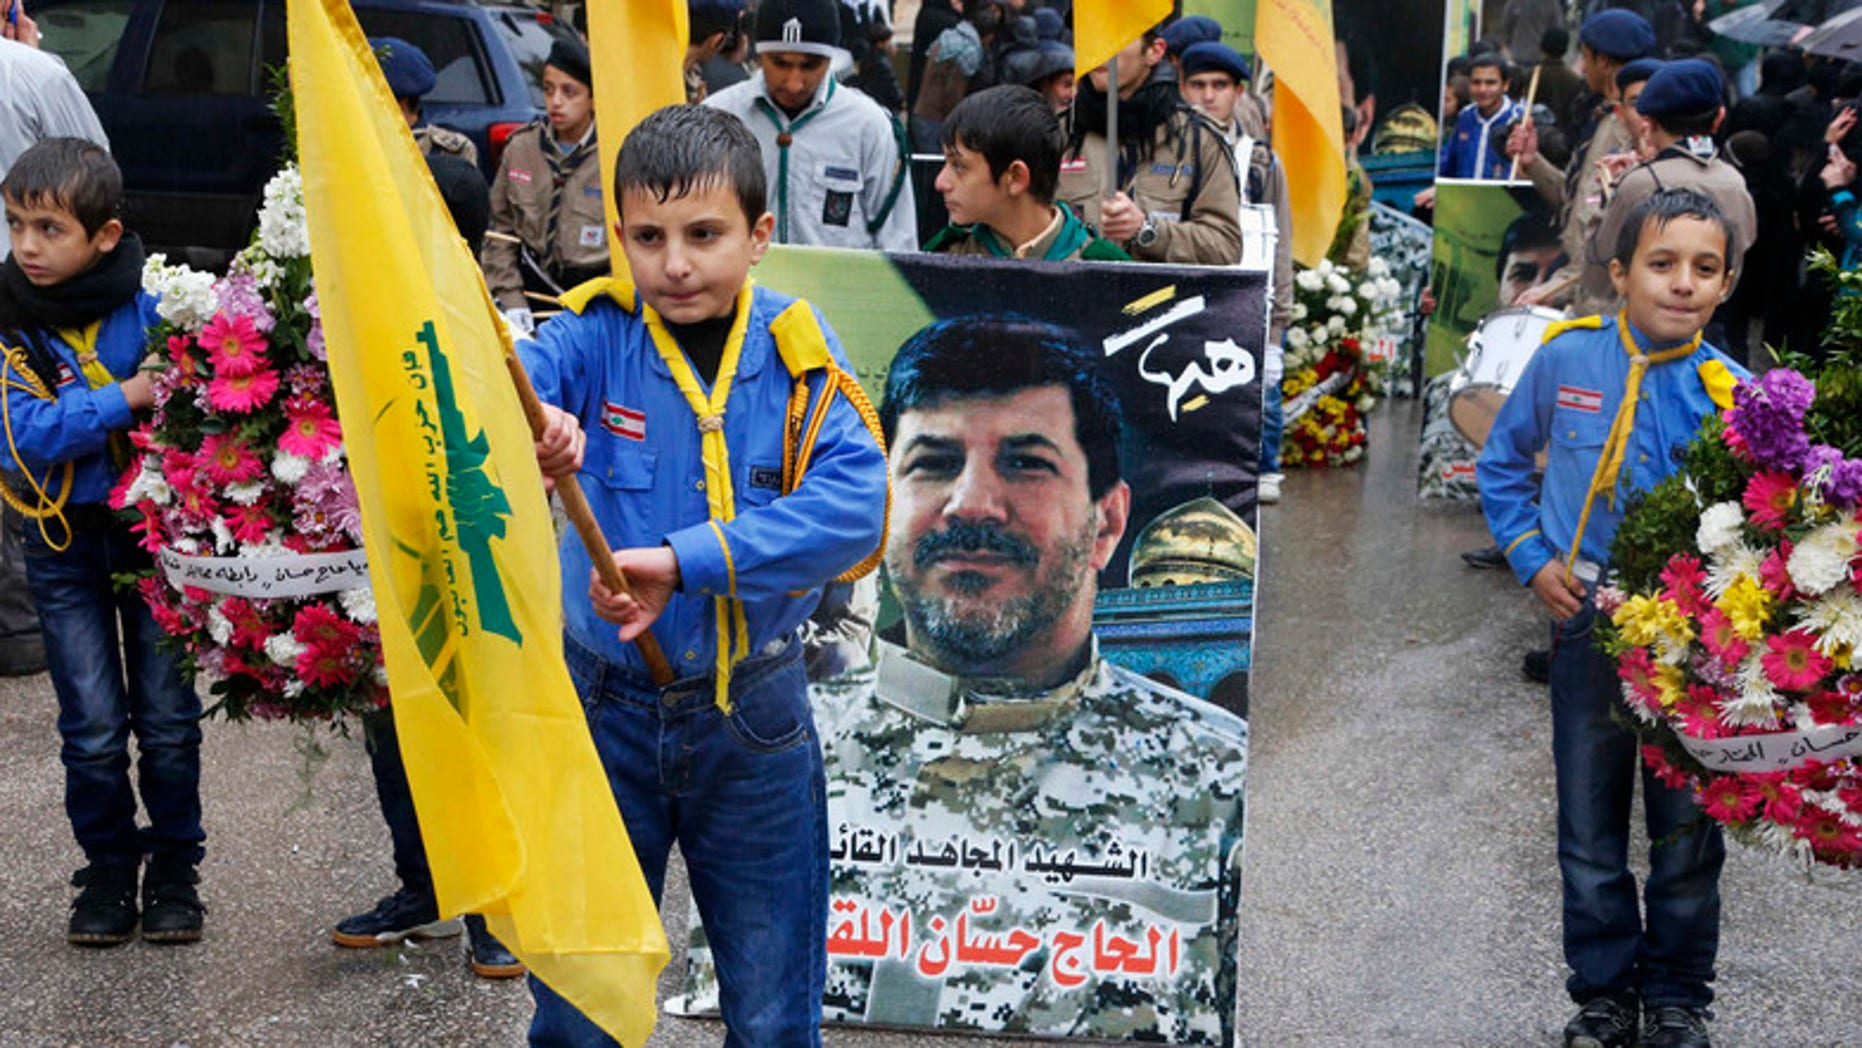 Hezbollah boy scouts carry the party flags and a picture of Hezbollah commander Hassan al-Lakkis during his funeral in Baalbeck, in Lebanon's Bekaa valley. (Reuters)